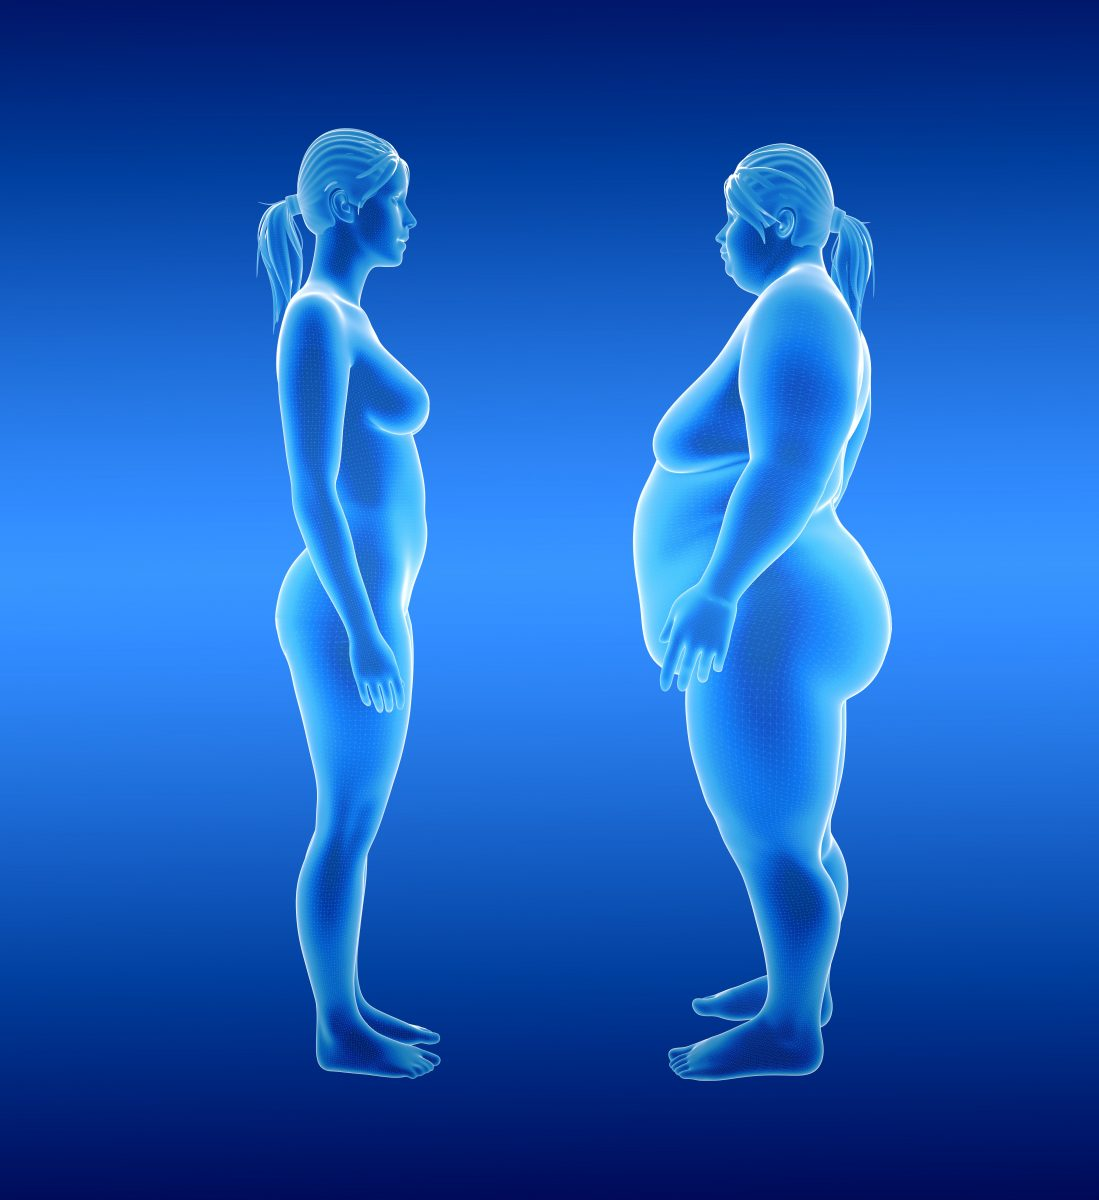 Obesity Linked to More Severe Fibromyalgia Symptoms in Study of Hispanics